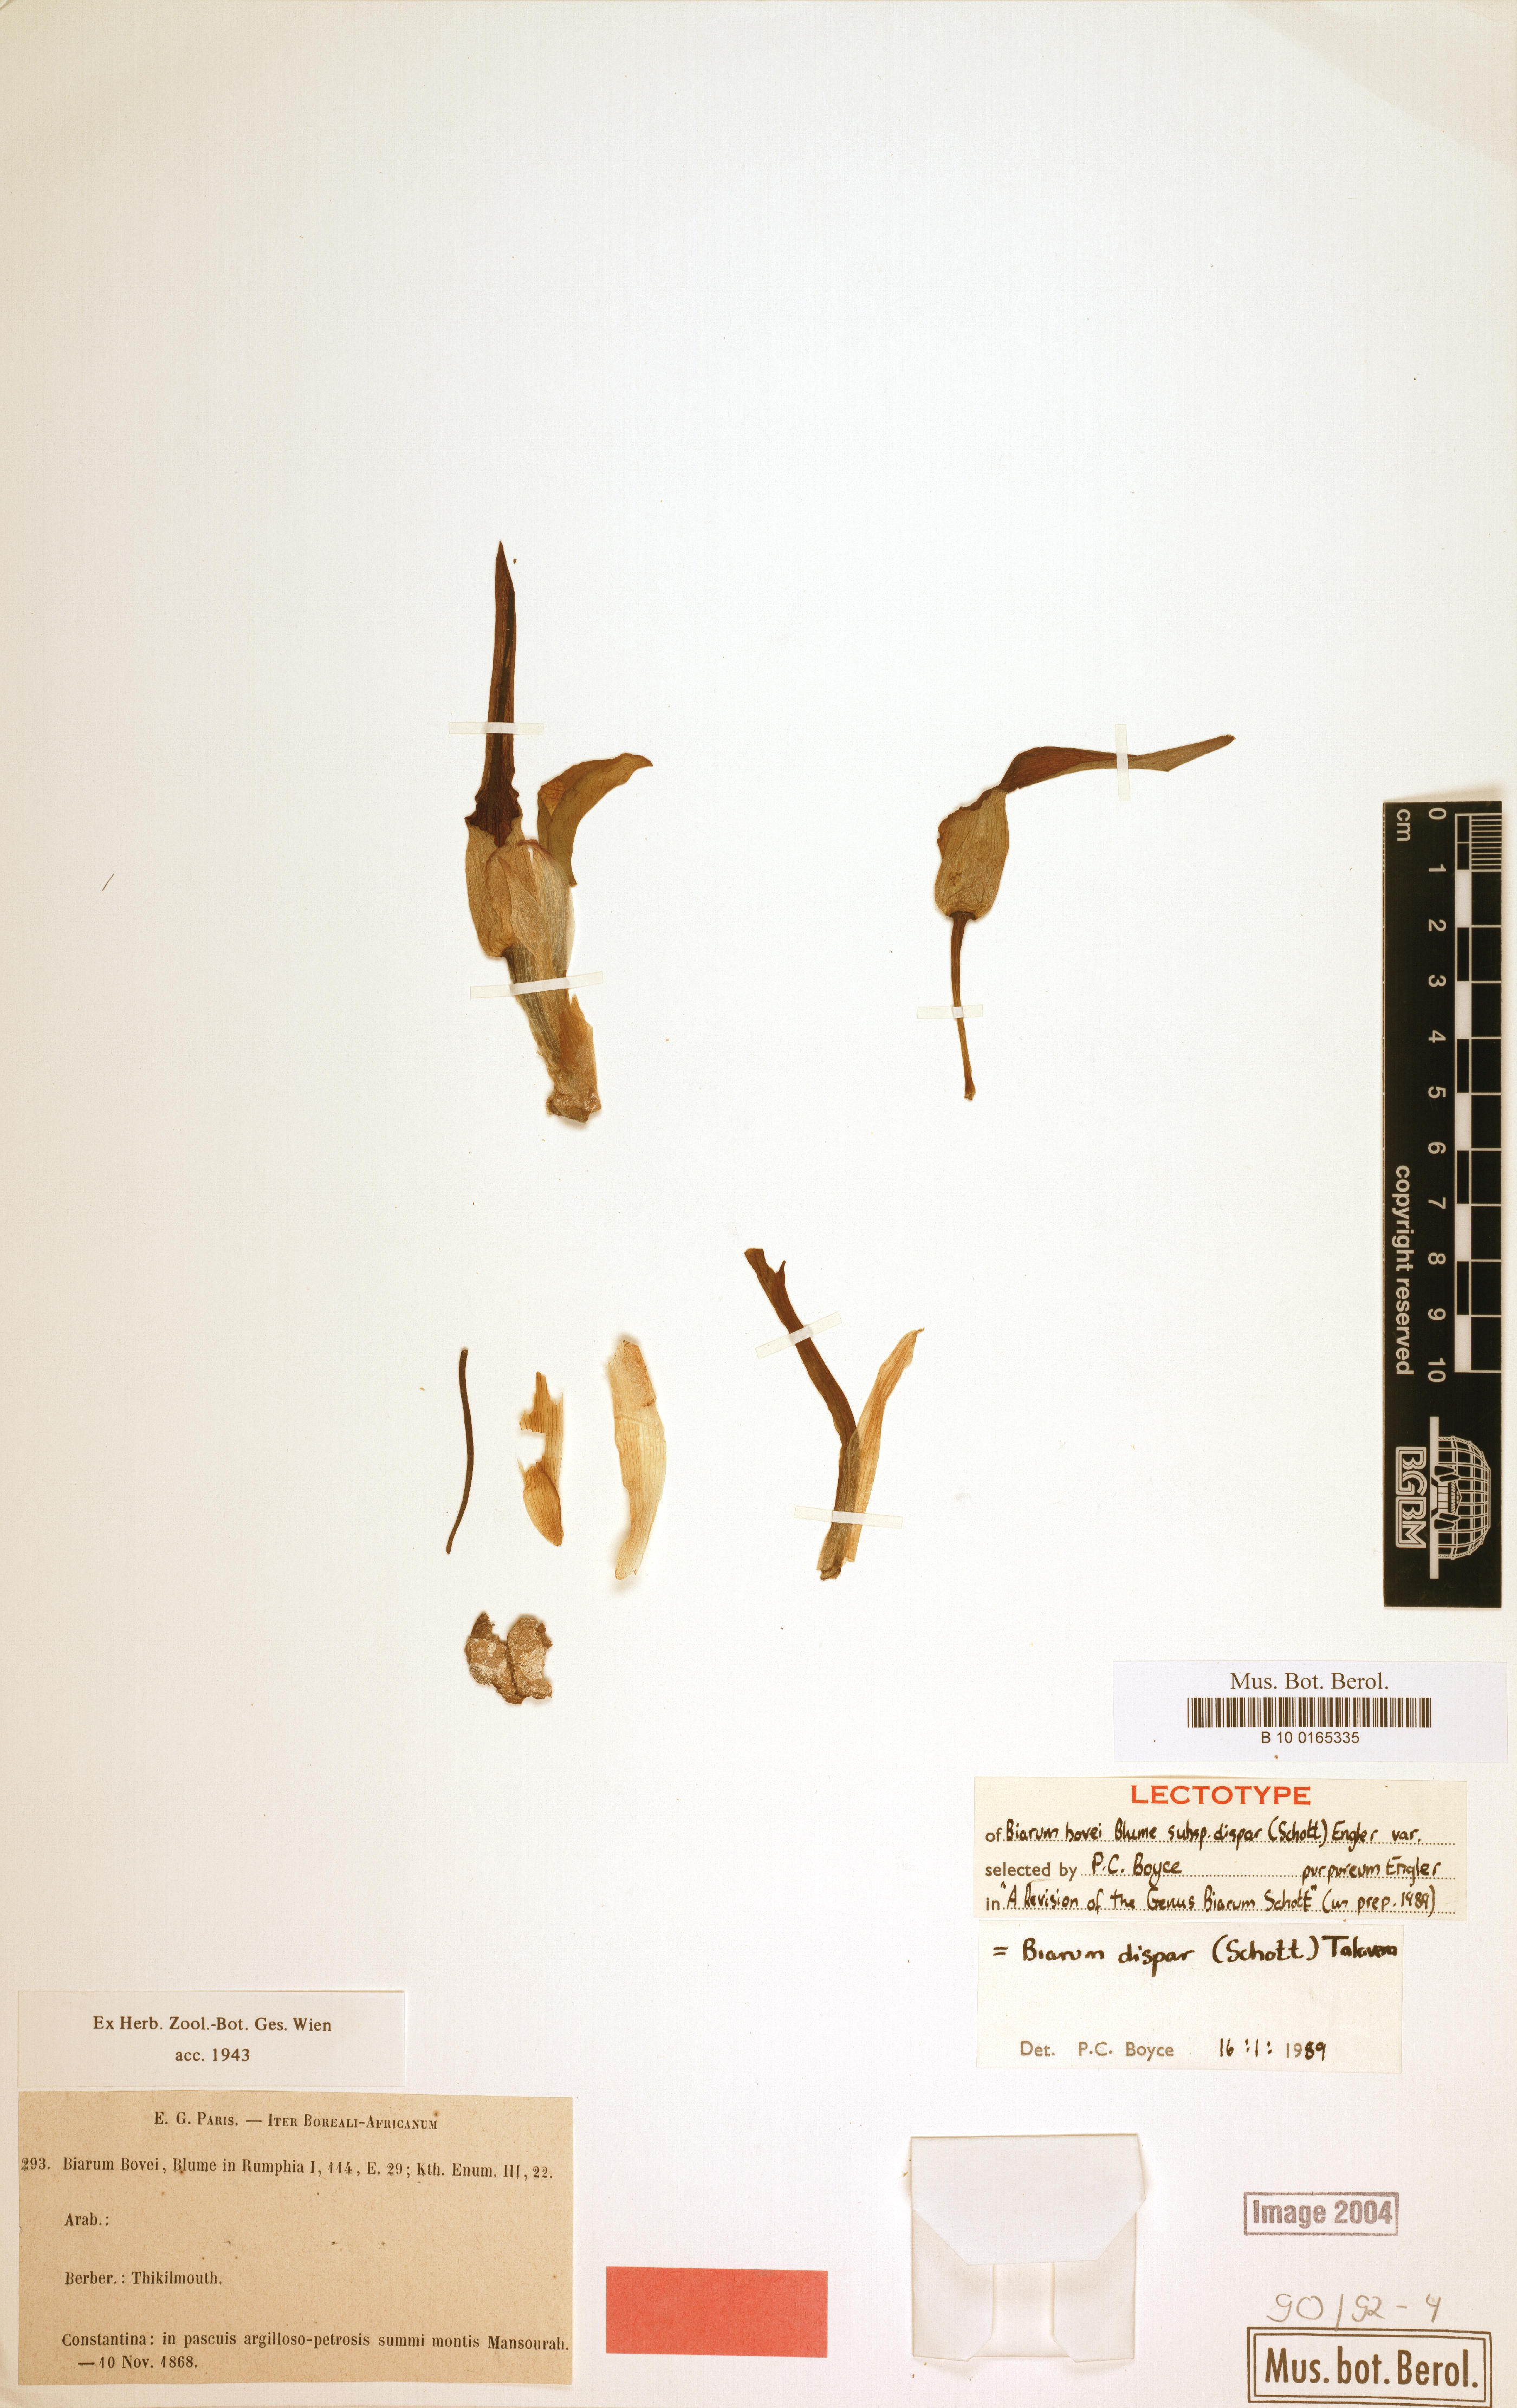 © Röpert, D. (Ed.) 2000- (continuously updated): Digital specimen images at the Herbarium Berolinense. - Published on the Internet http://ww2.bgbm.org/herbarium/ (Barcode: B 10 0165335 / ImageId: 229300) [accessed 10-Feb-13]. –CC-BY-SA<br>